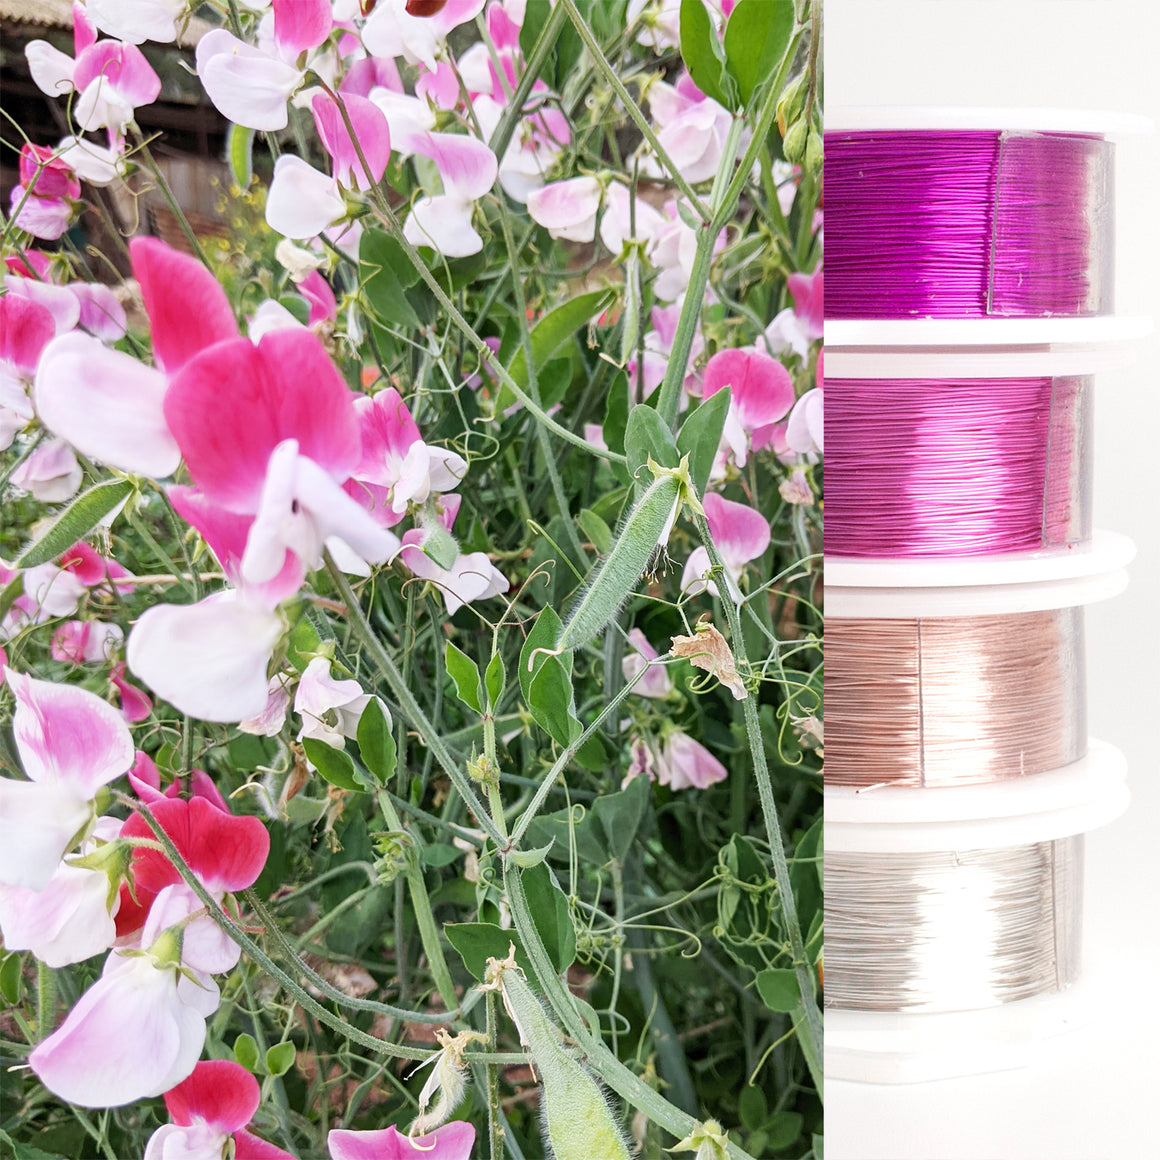 Jewelry making wire - Garden inspiration - rose sweet pea - 4 spools - YoolaDesign